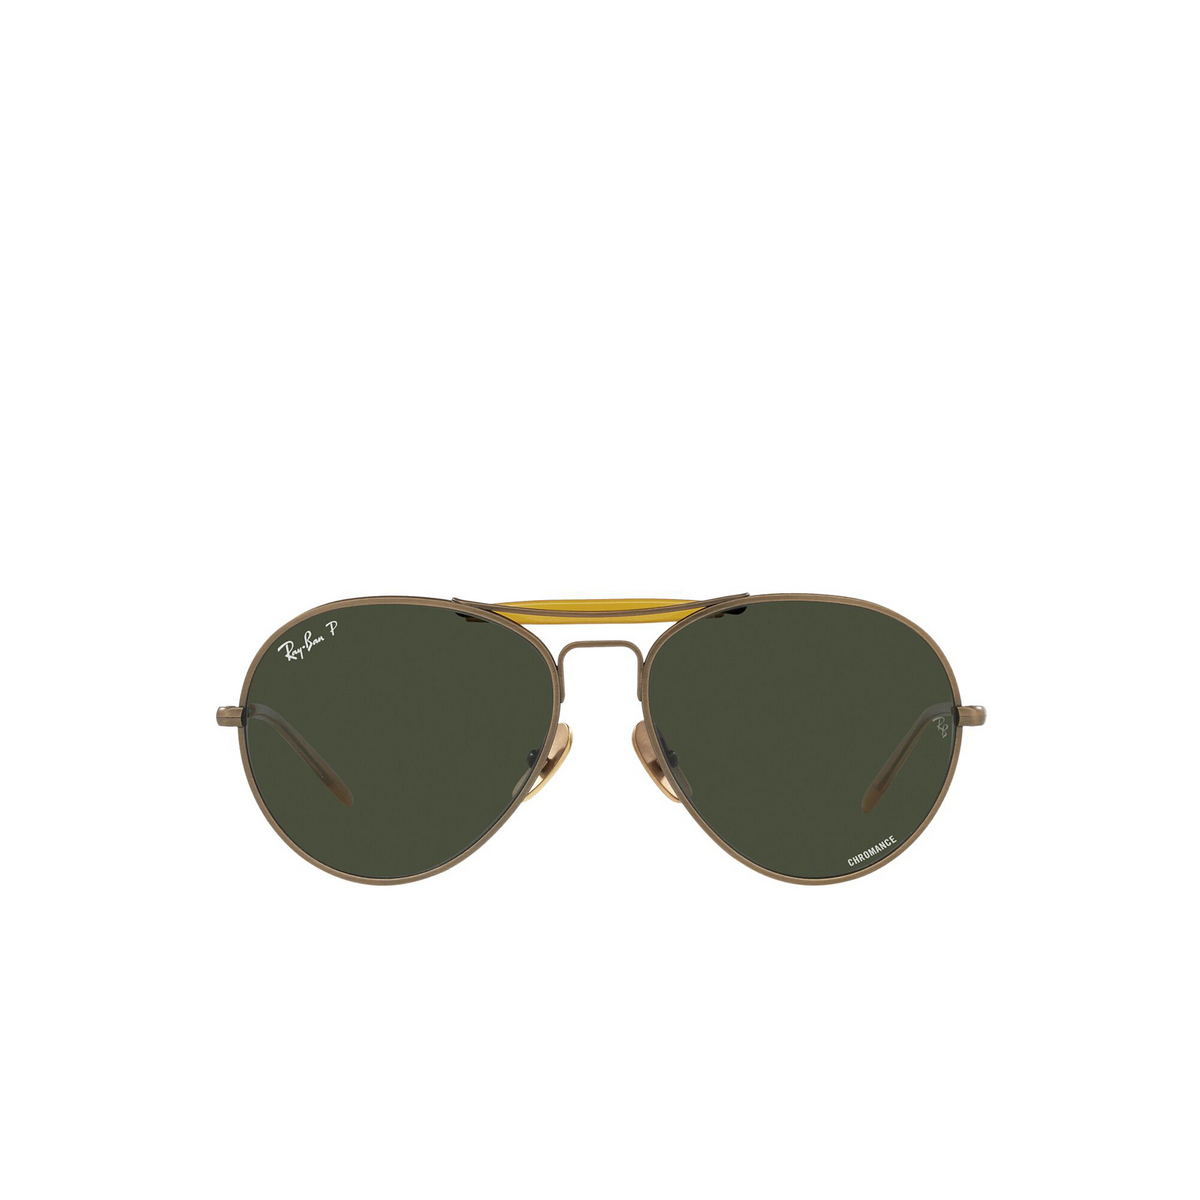 Ray-Ban® Aviator Sunglasses: RB8063 color Demi Gloss Antique Gold 9207P1 - front view.